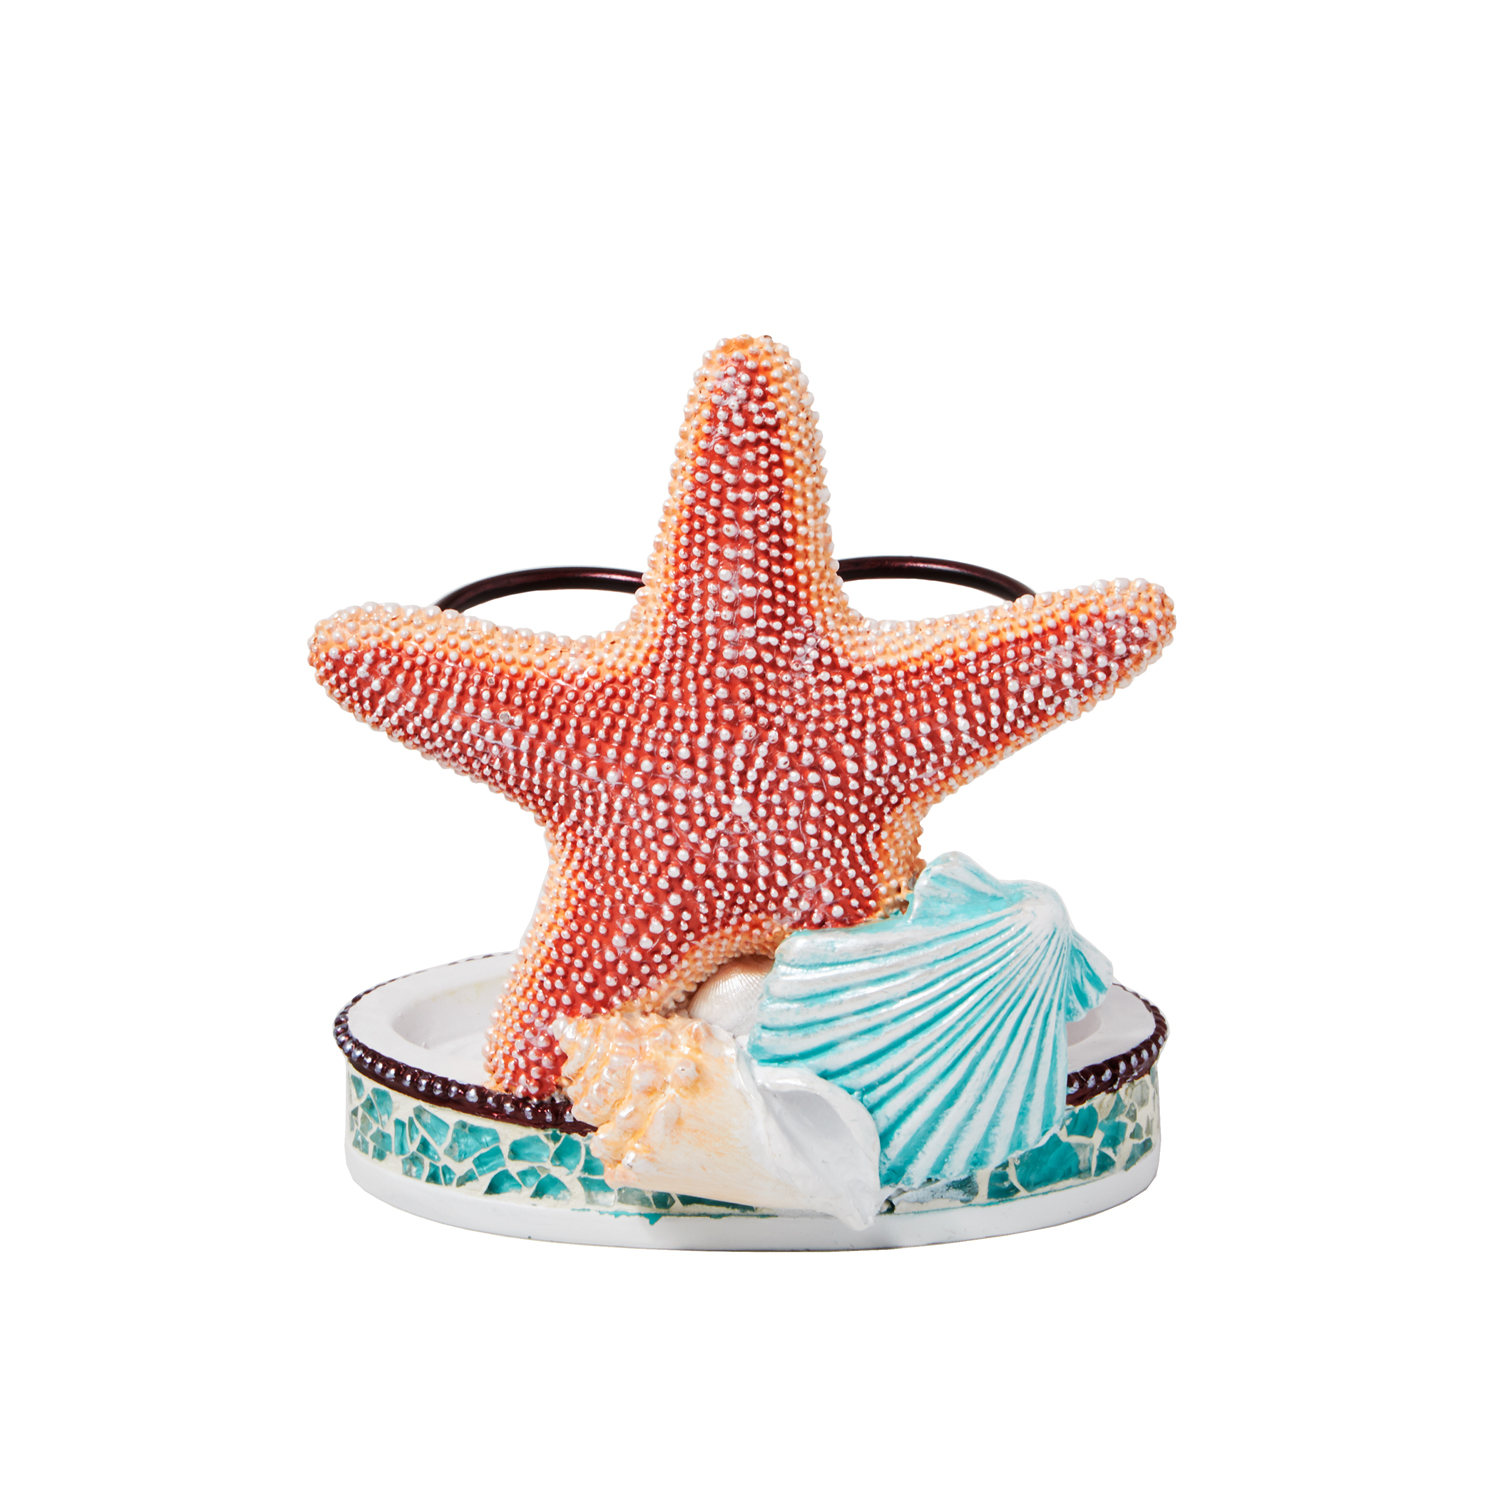 Turquoise Coral Toothbrush Holder